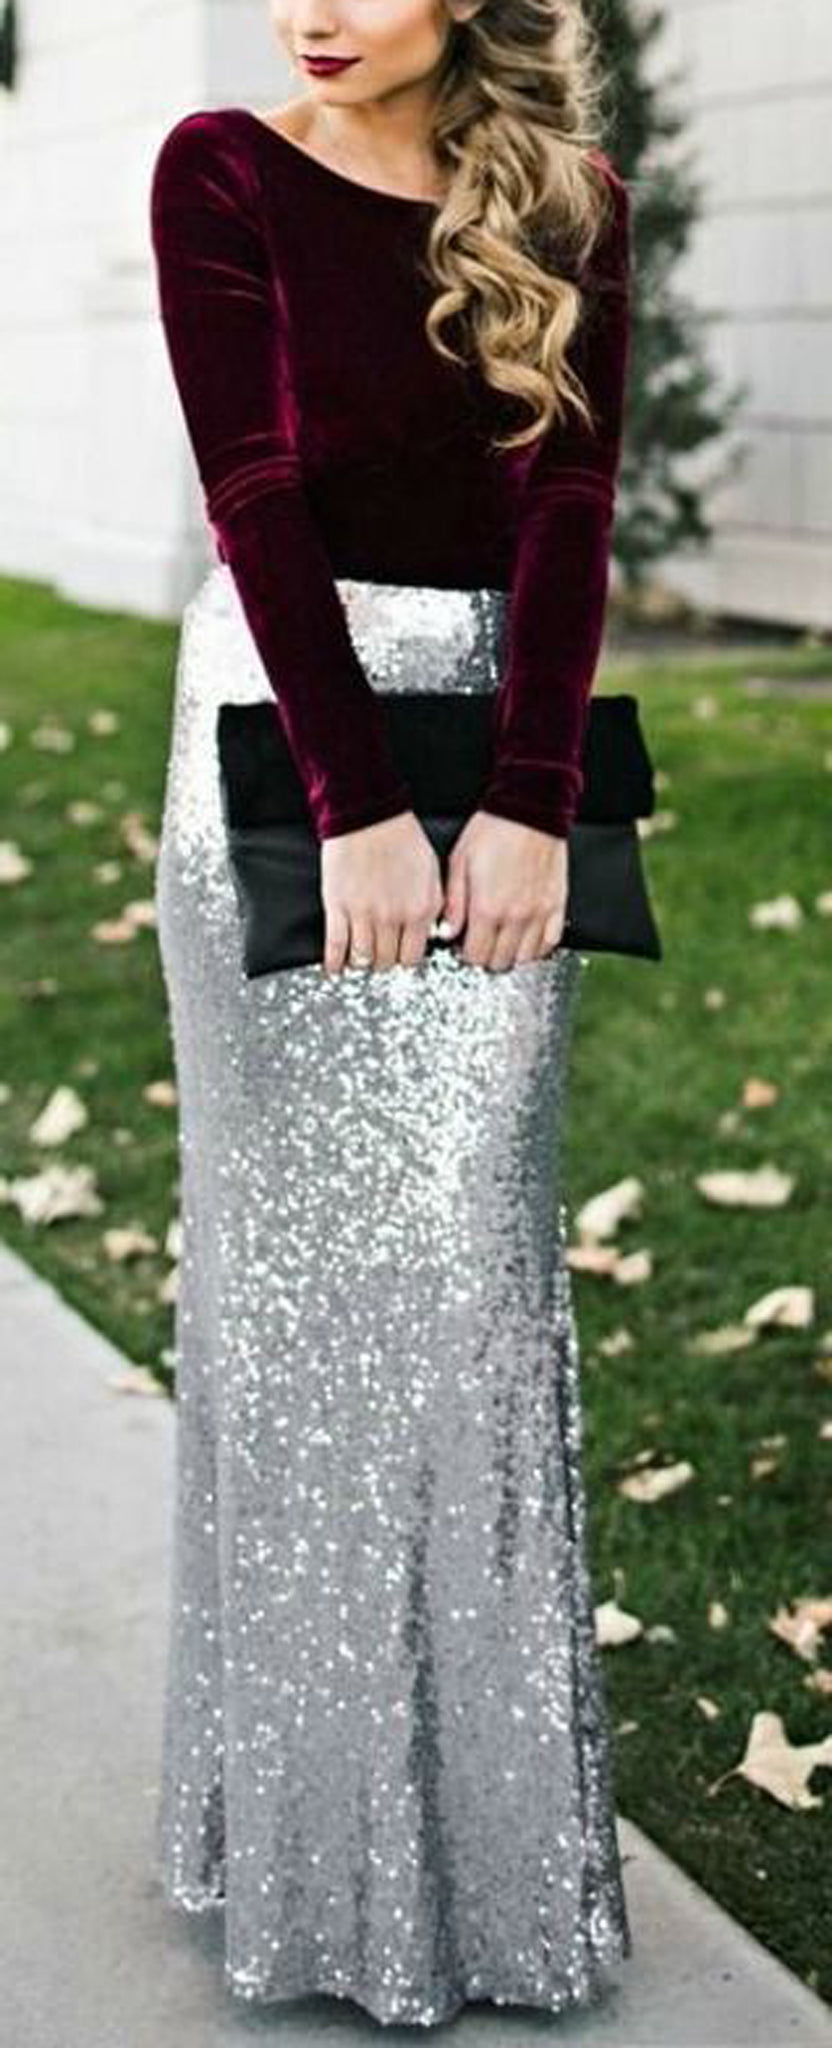 Fancy Christmas Outfit Ideas - Velvet Long Sleeve Shirt - Sparkly Silver Sequin Maxi Dress Skirt - MyBodiArt.com